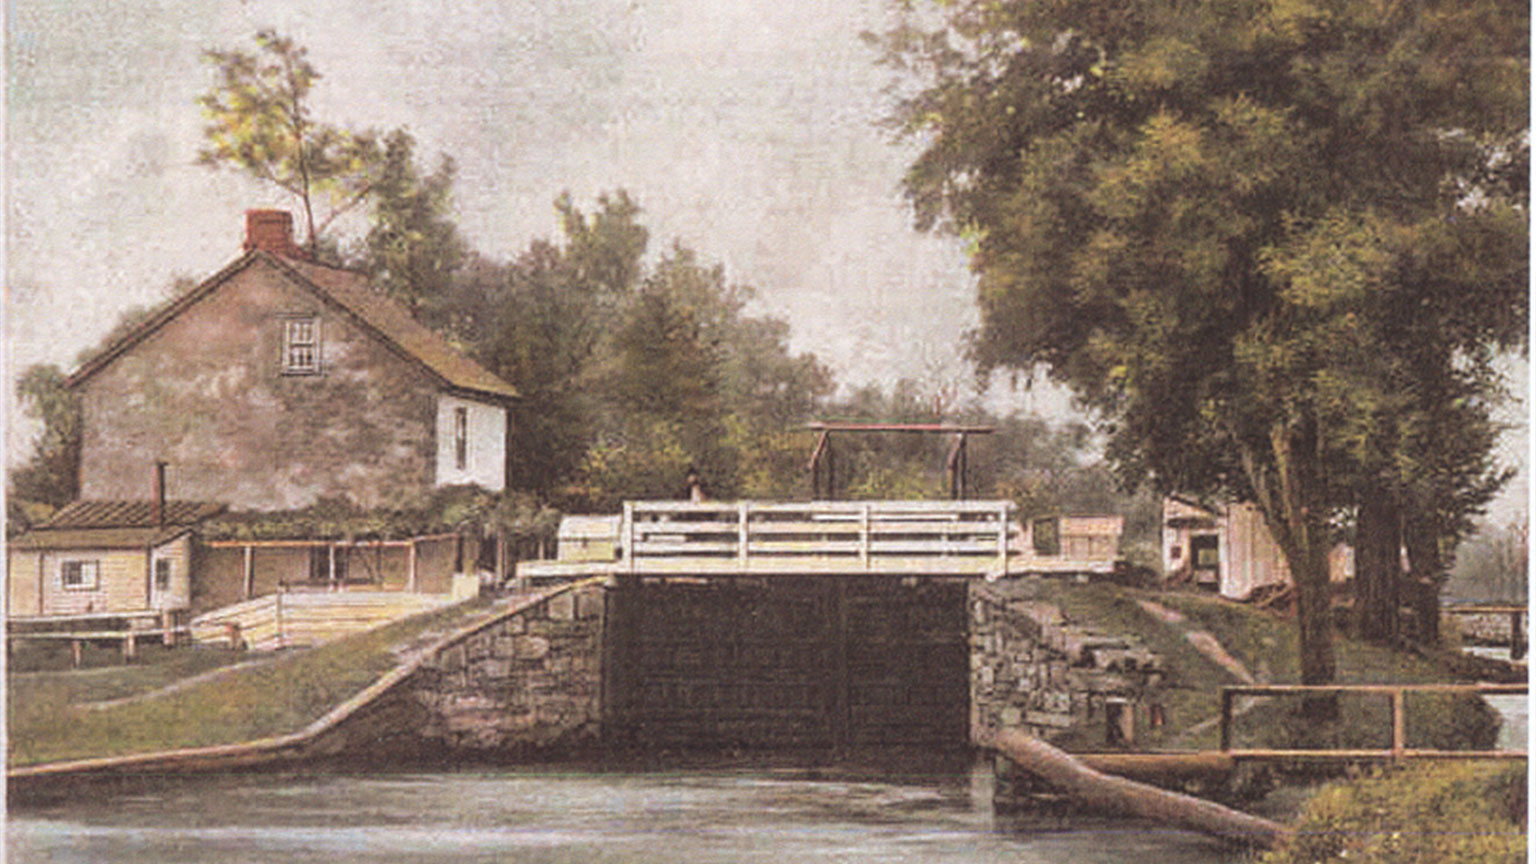 This postcard shows lock 43 in its heyday when it was well cared for and canal boats passed through its gates every day. This is what  the lock would have looked like when Finn locked through.